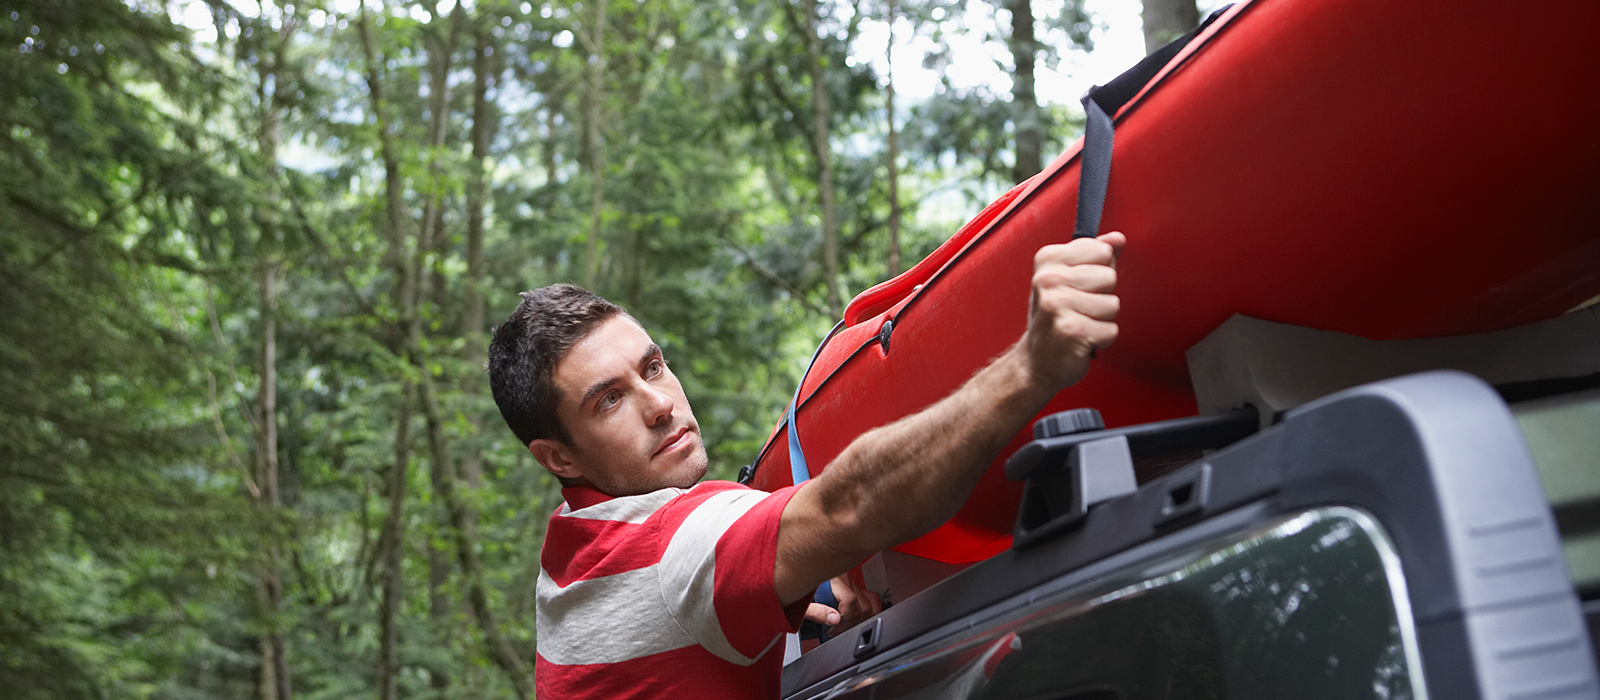 Man fastening a kayak to his car roof